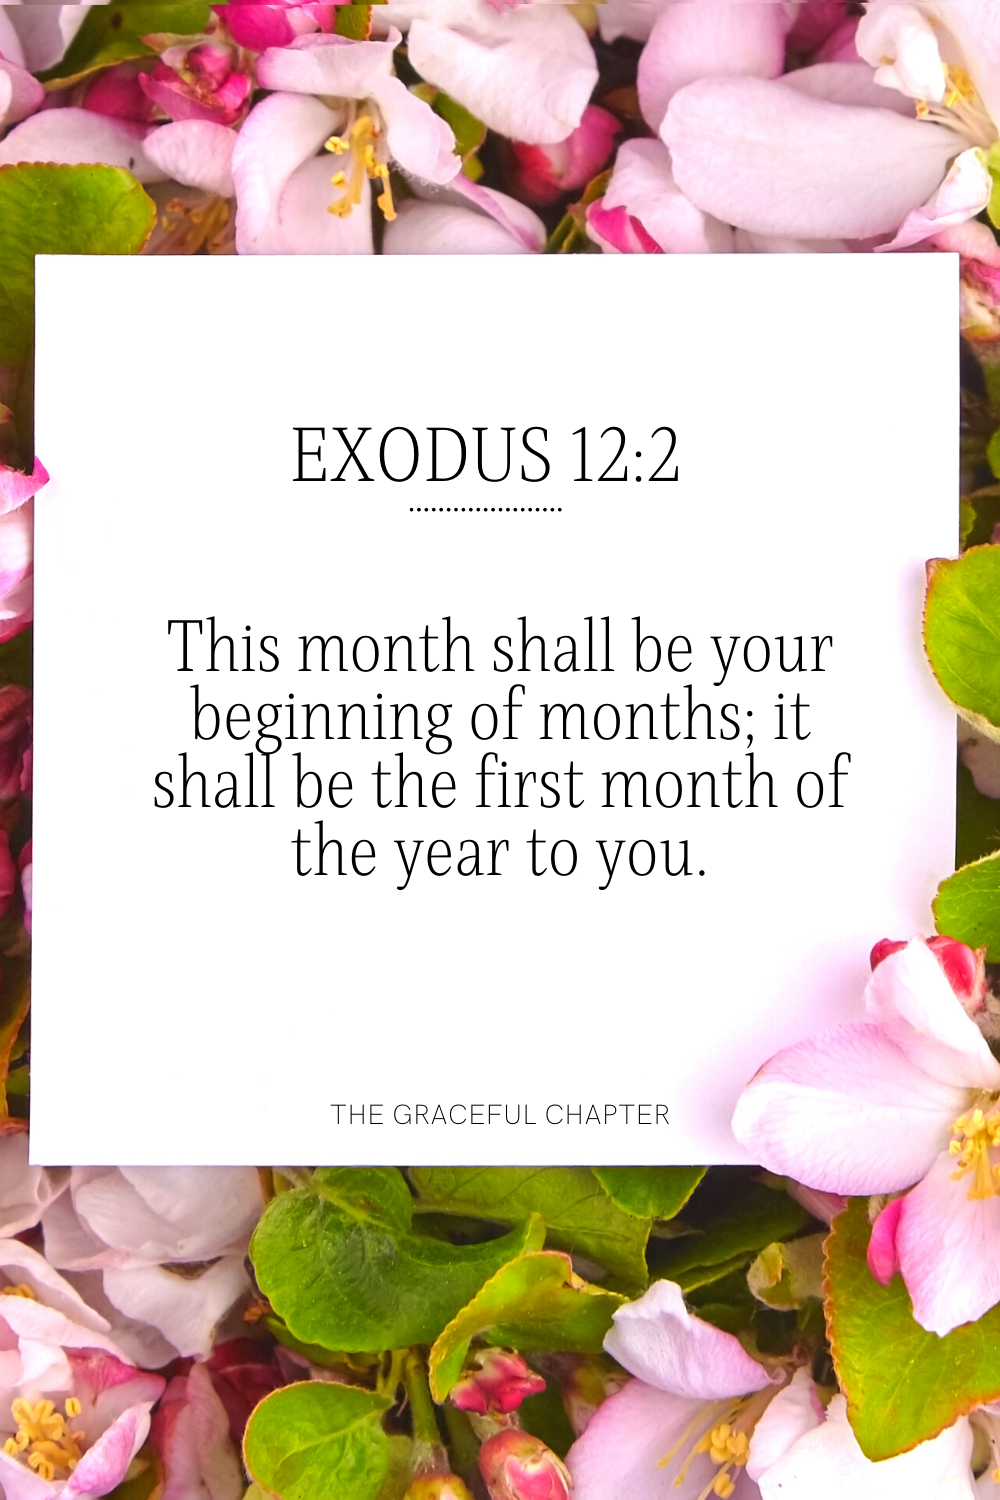 This month shall be your beginning of months; it shall be the first month of the year to you. Exodus 12:2